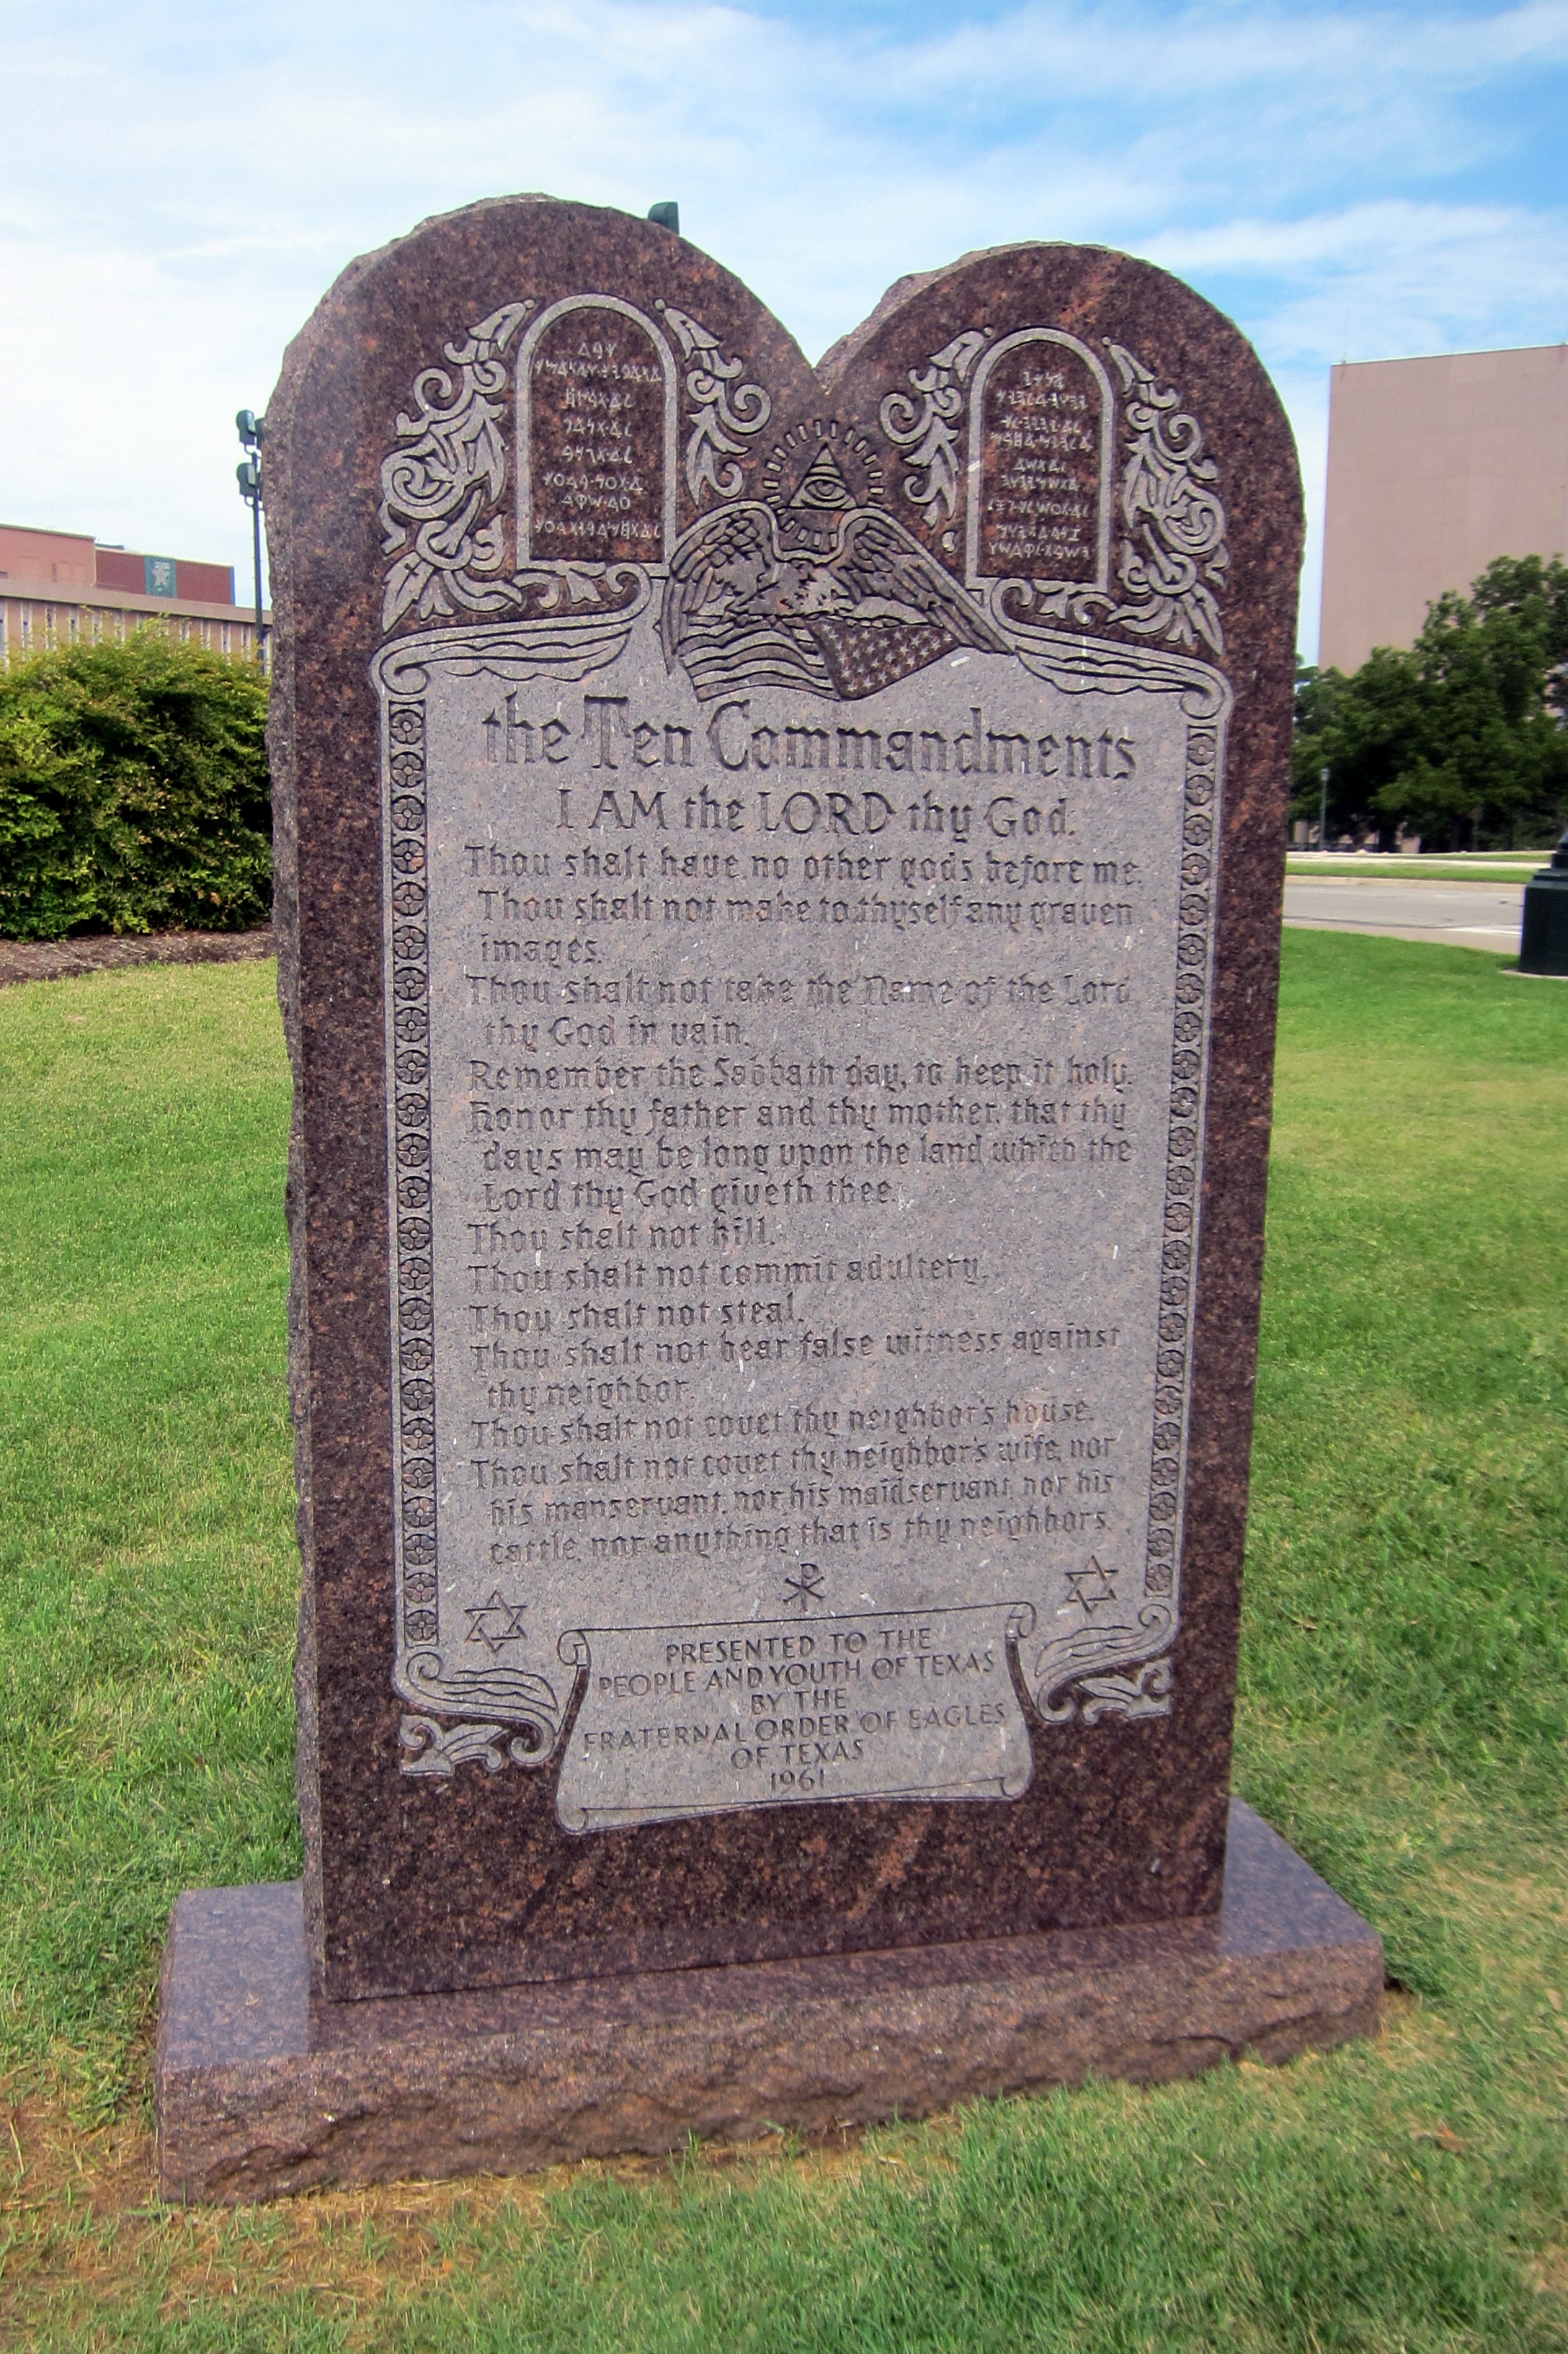 The Ten Commandments statue on the grounds of the Texas State House. (Credit: Wally Gobetz, accessed via Flickr creative commons)